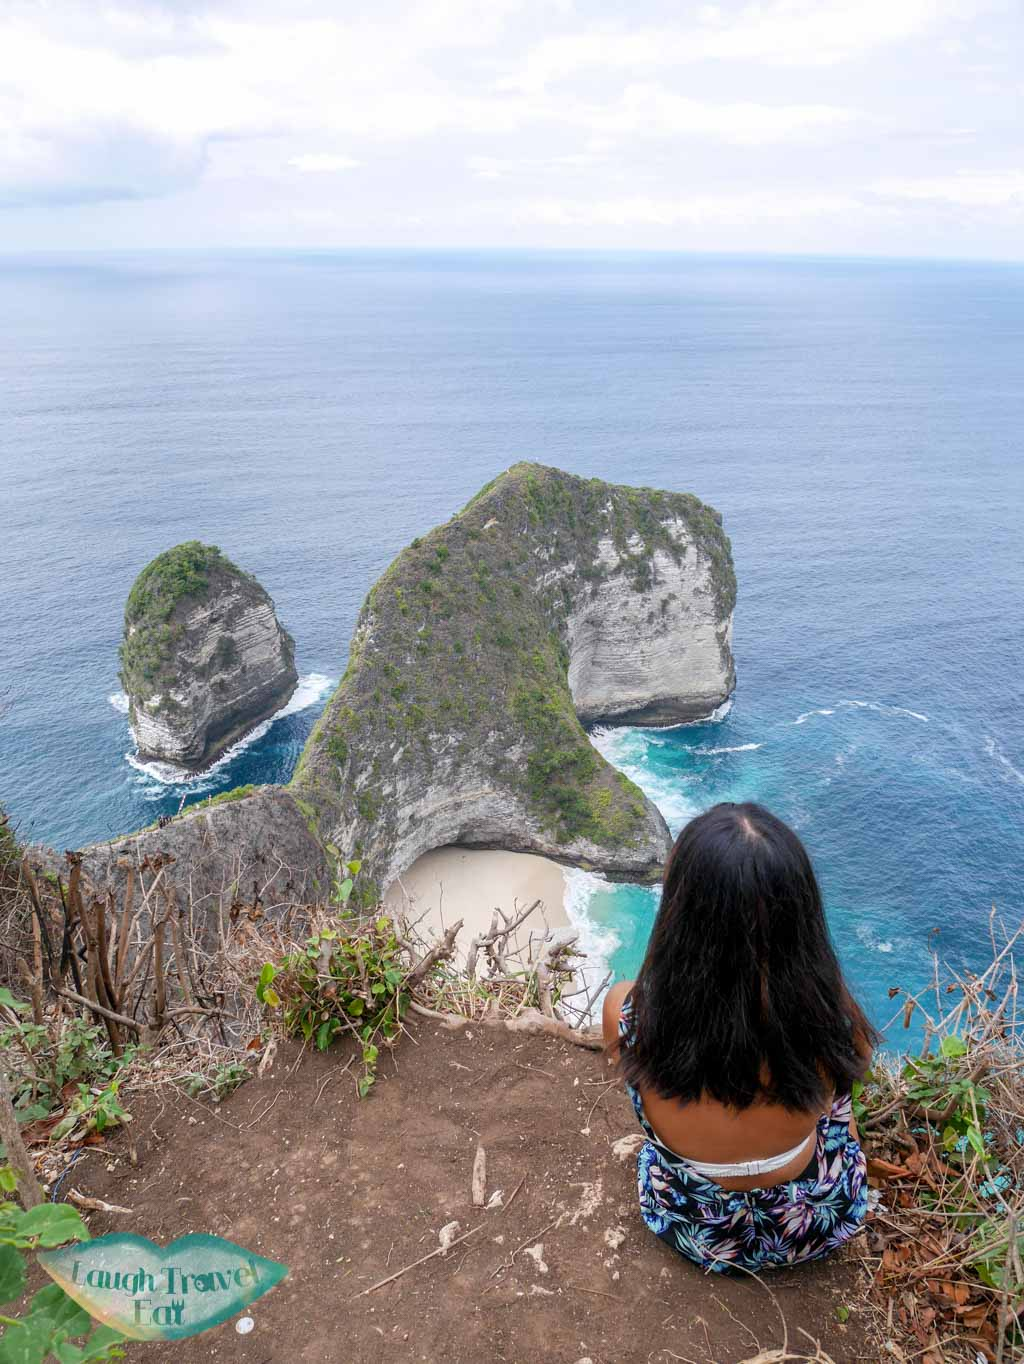 first view point of Kelingking beach Nusa Penida Bali Indonesia - Laugh Travel Eat